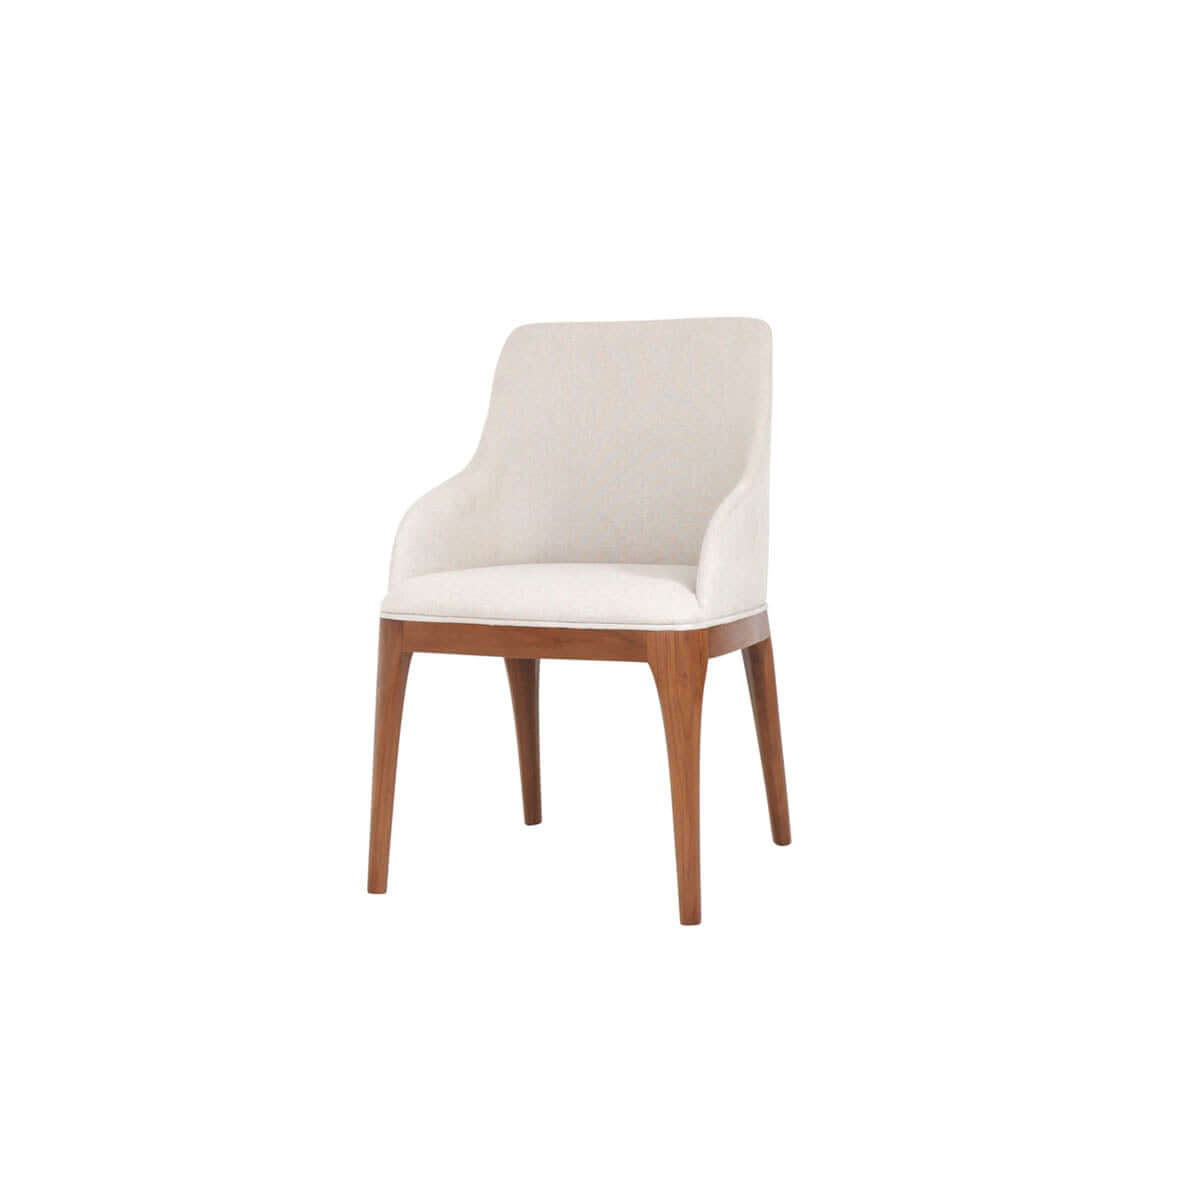 contemporary dining and armchair with straight wooden legs